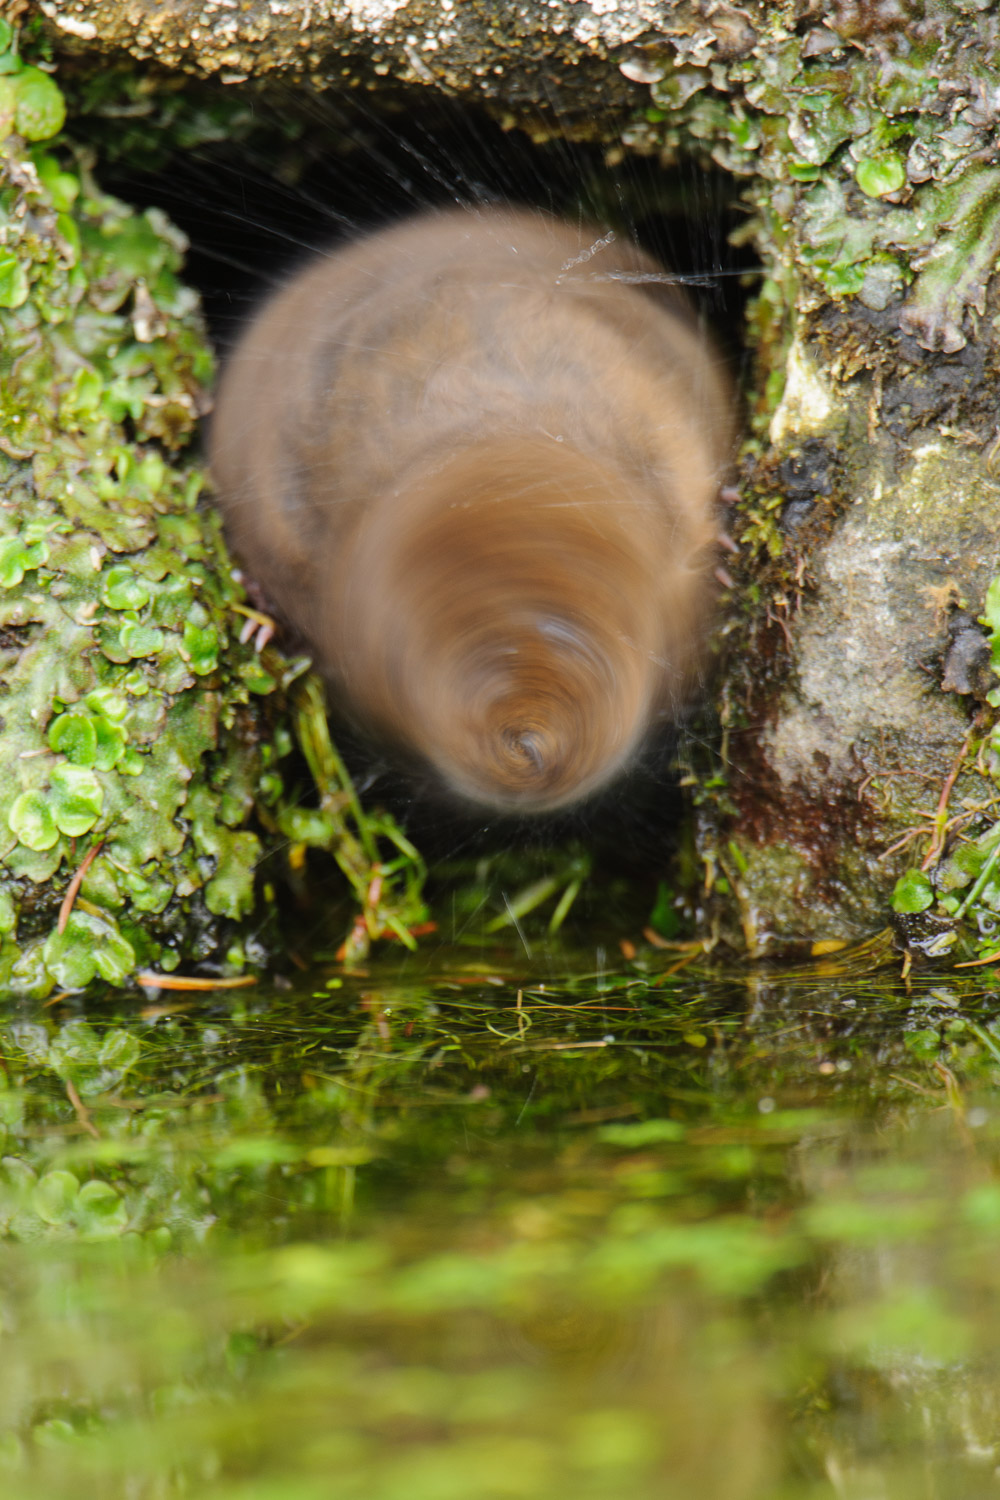 Water Vole in a Spin